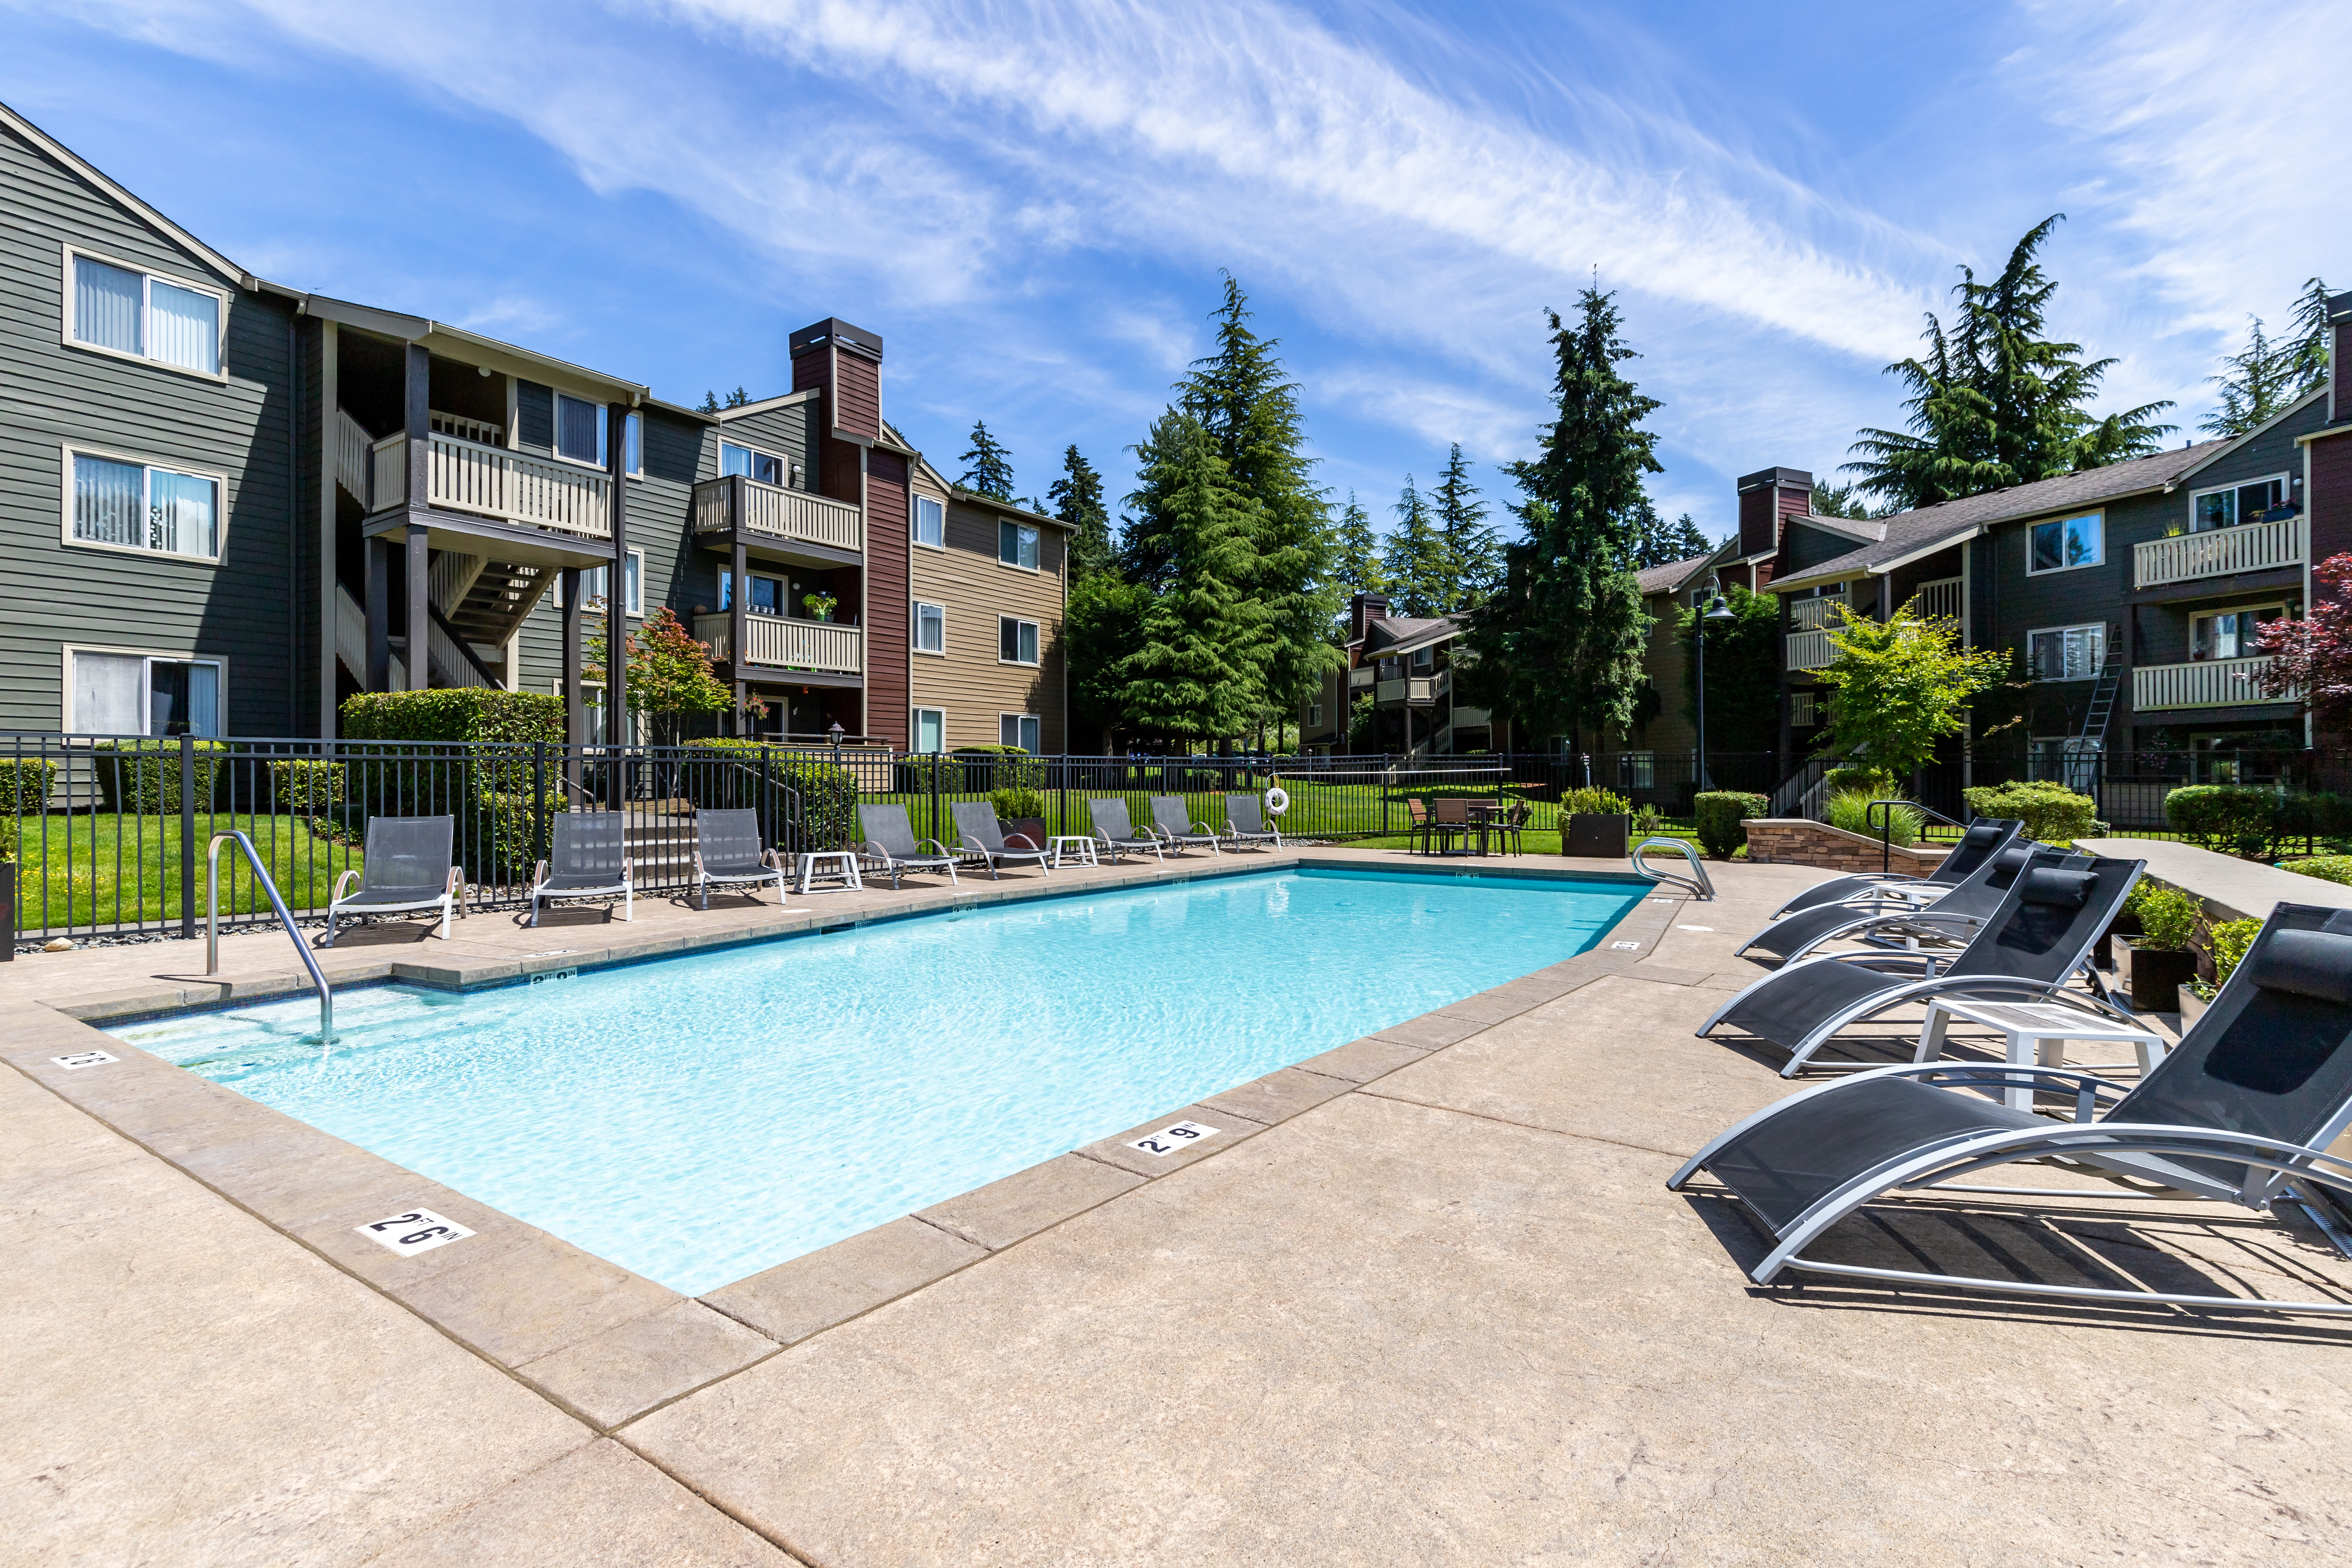 Outdoor pool at The Preserve at Forbes Creek in Kirkland, Washington